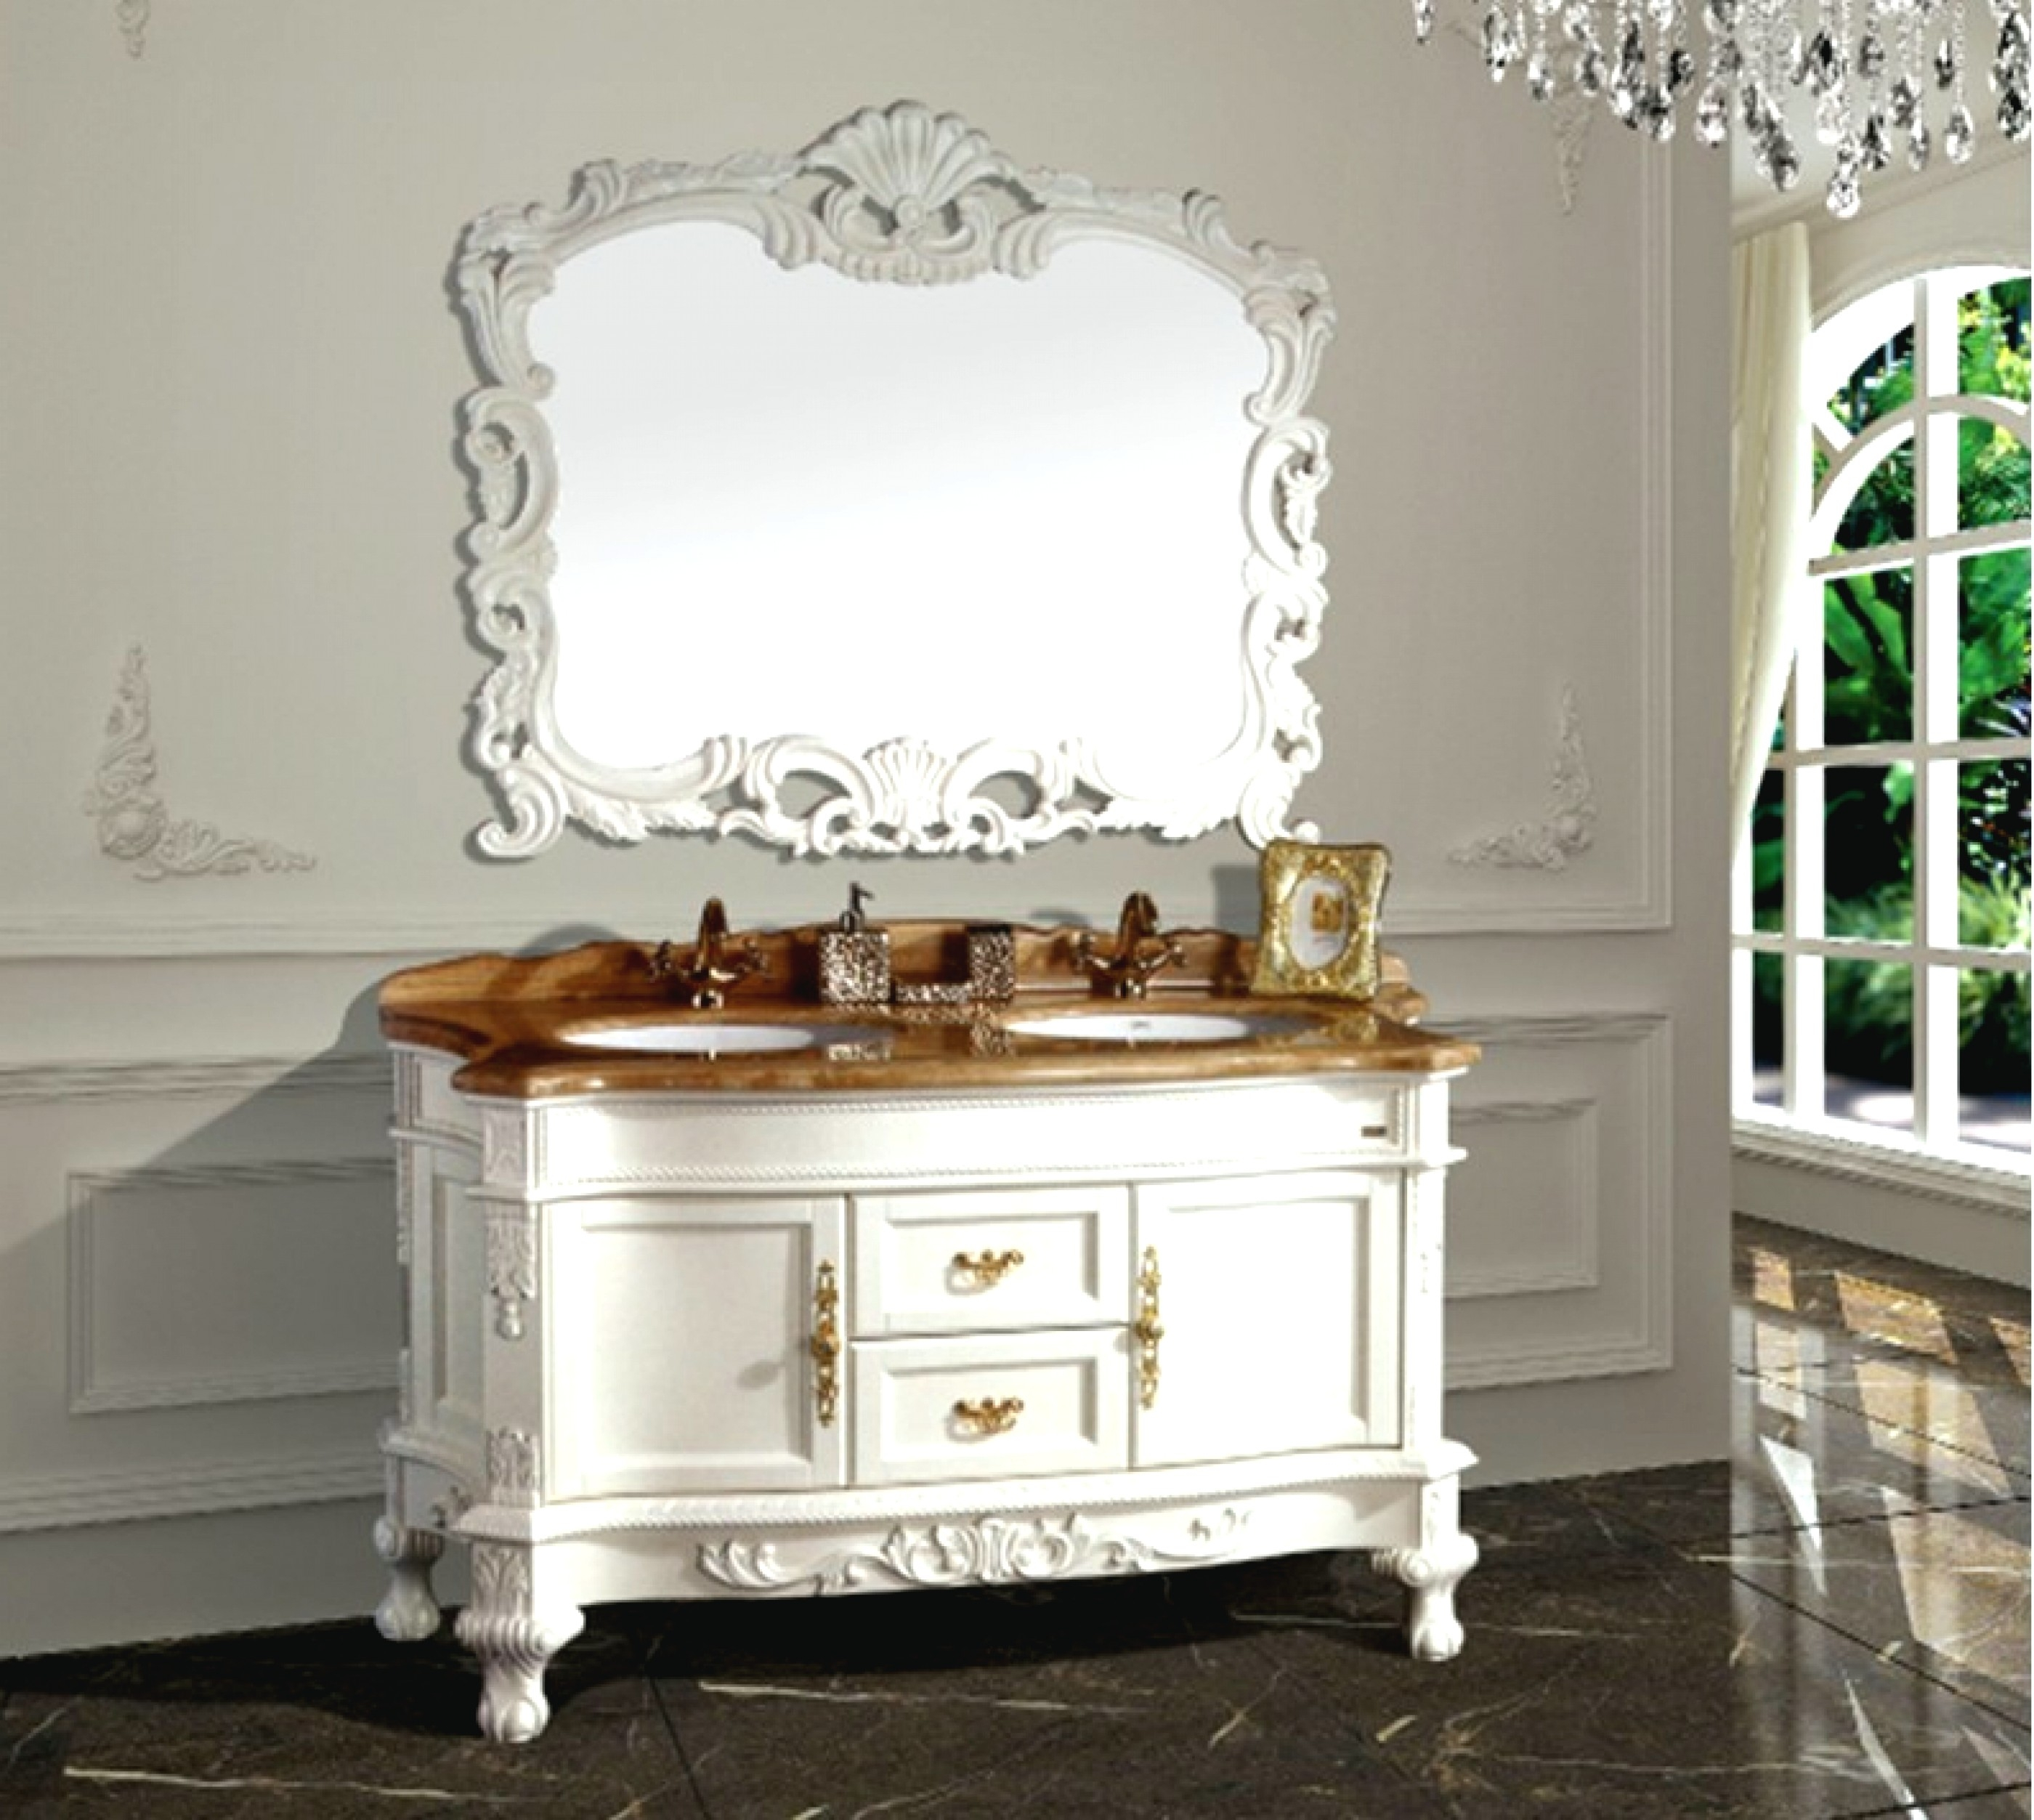 Permalink to Arched Bathroom Vanity Mirror